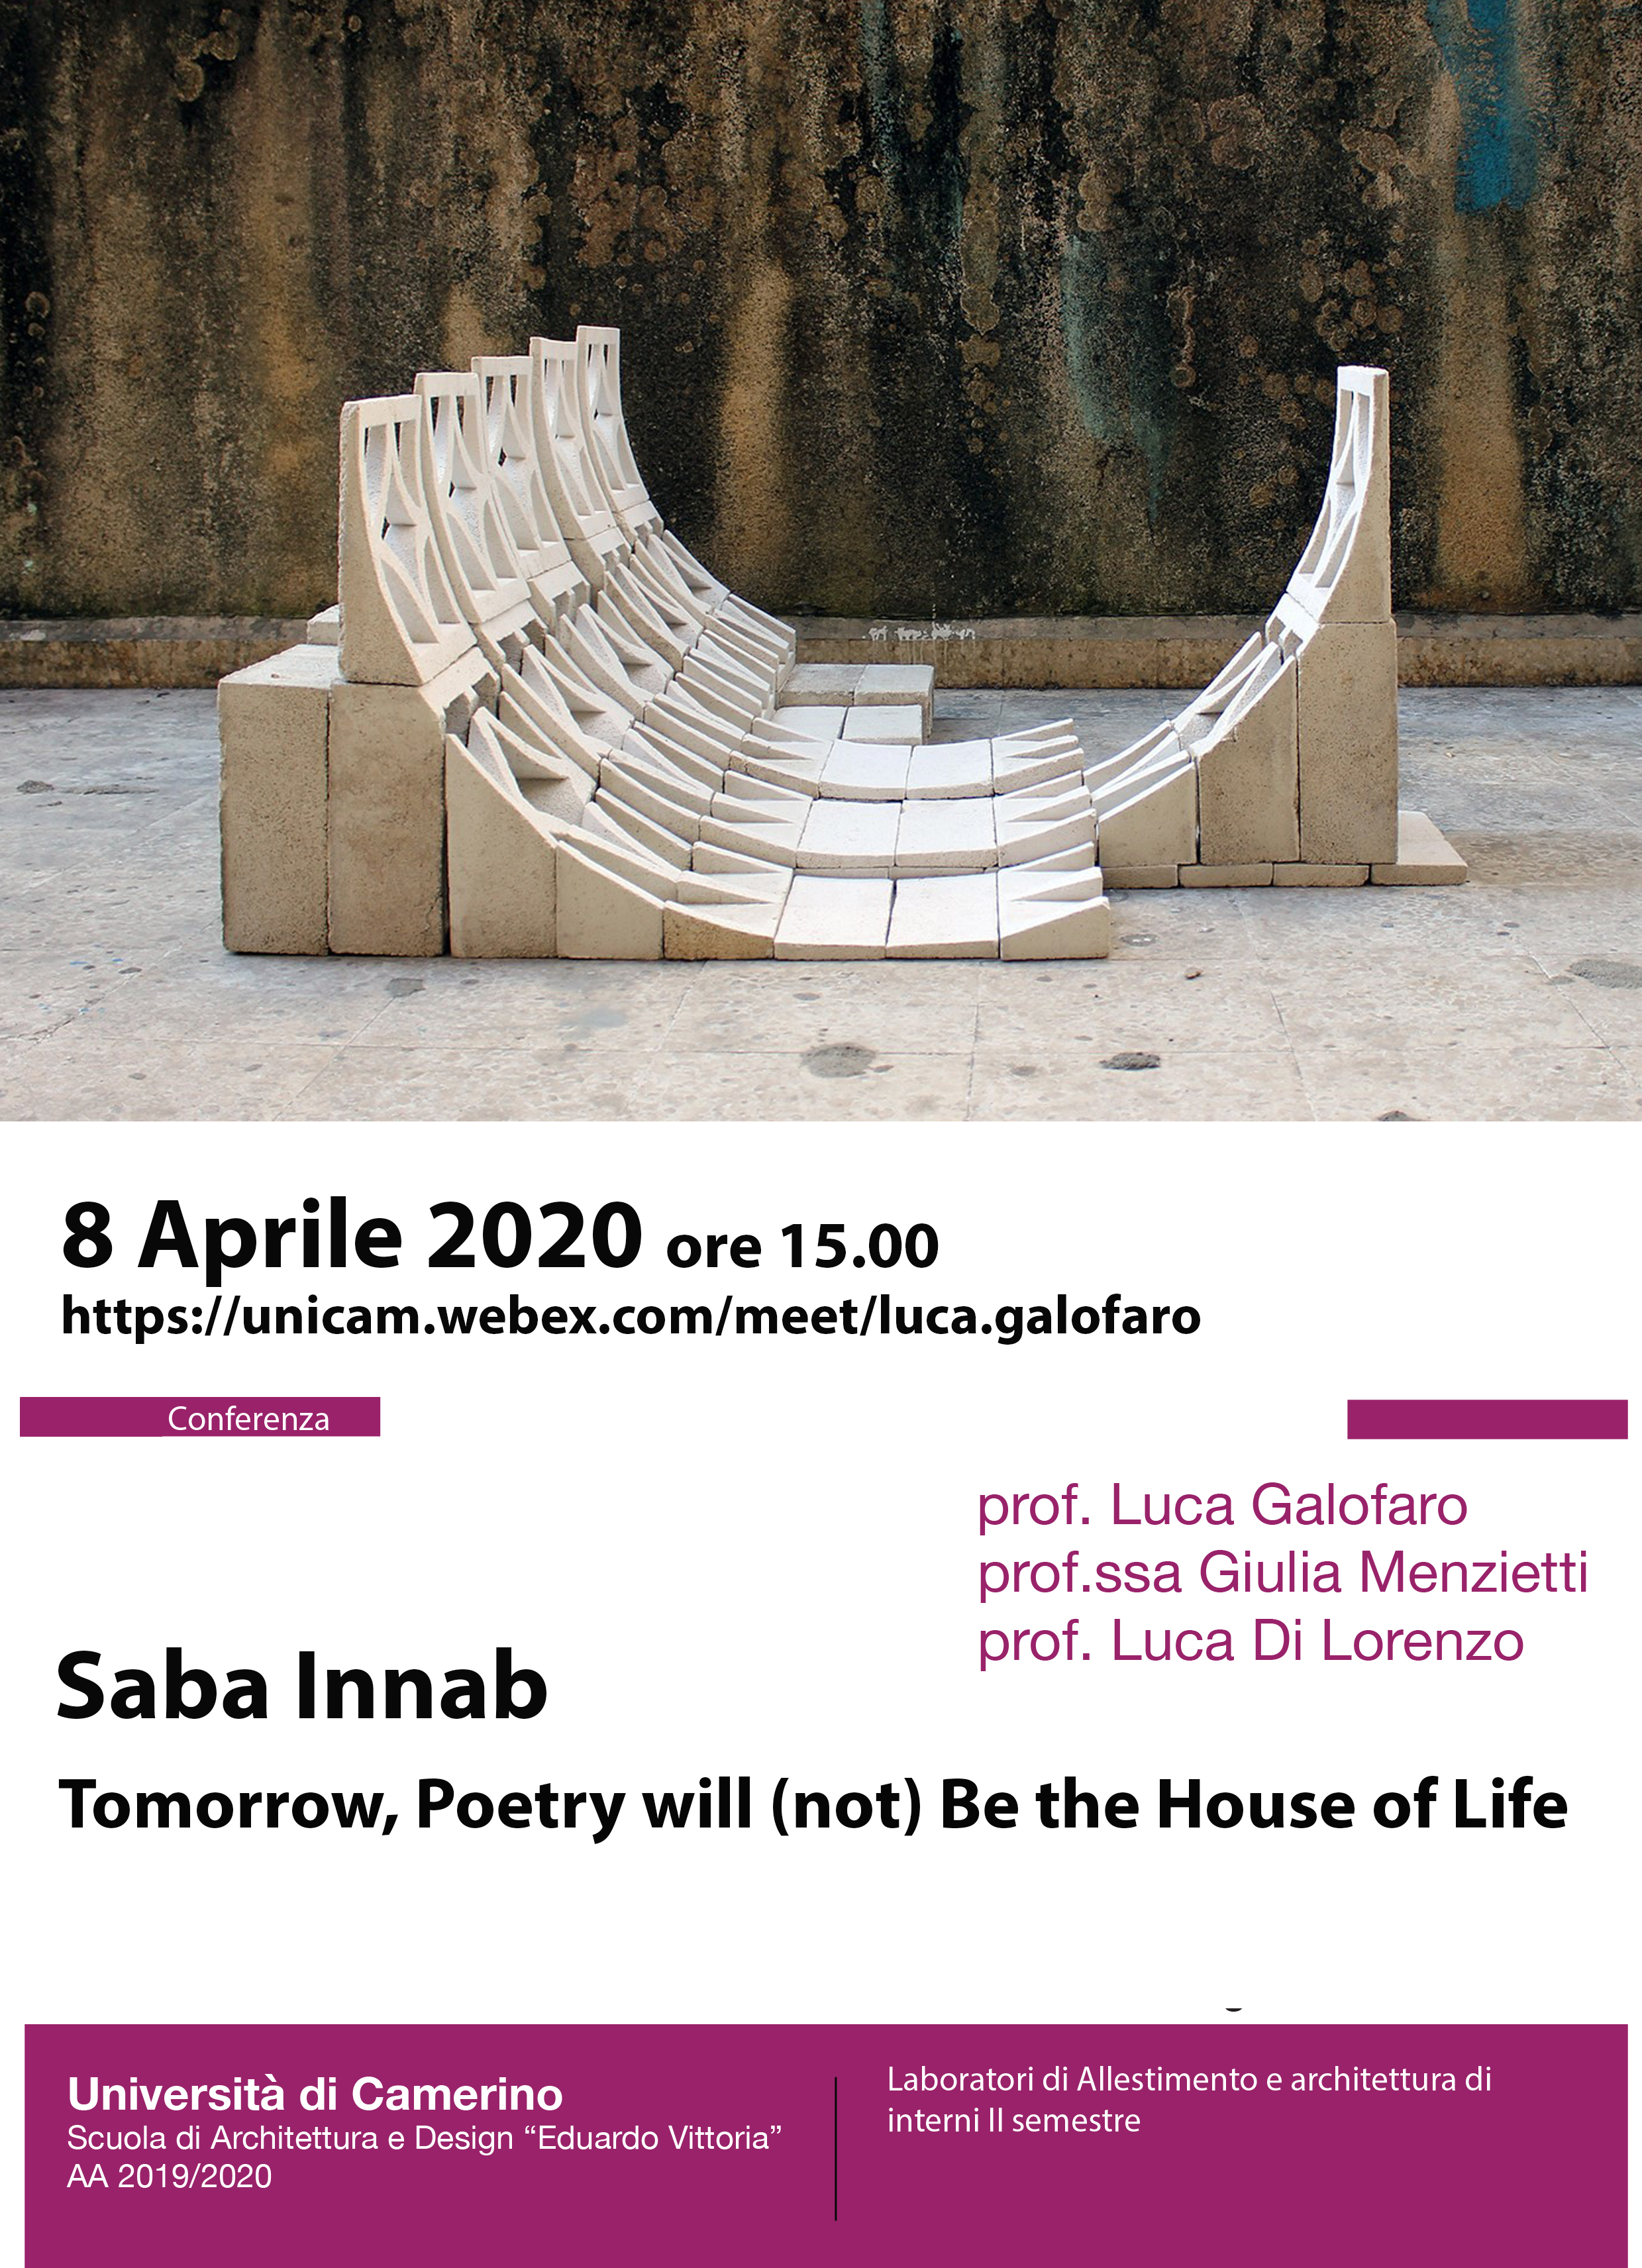 Saba Innab, Tomorrow, Poetry will (not) Be the House of Life